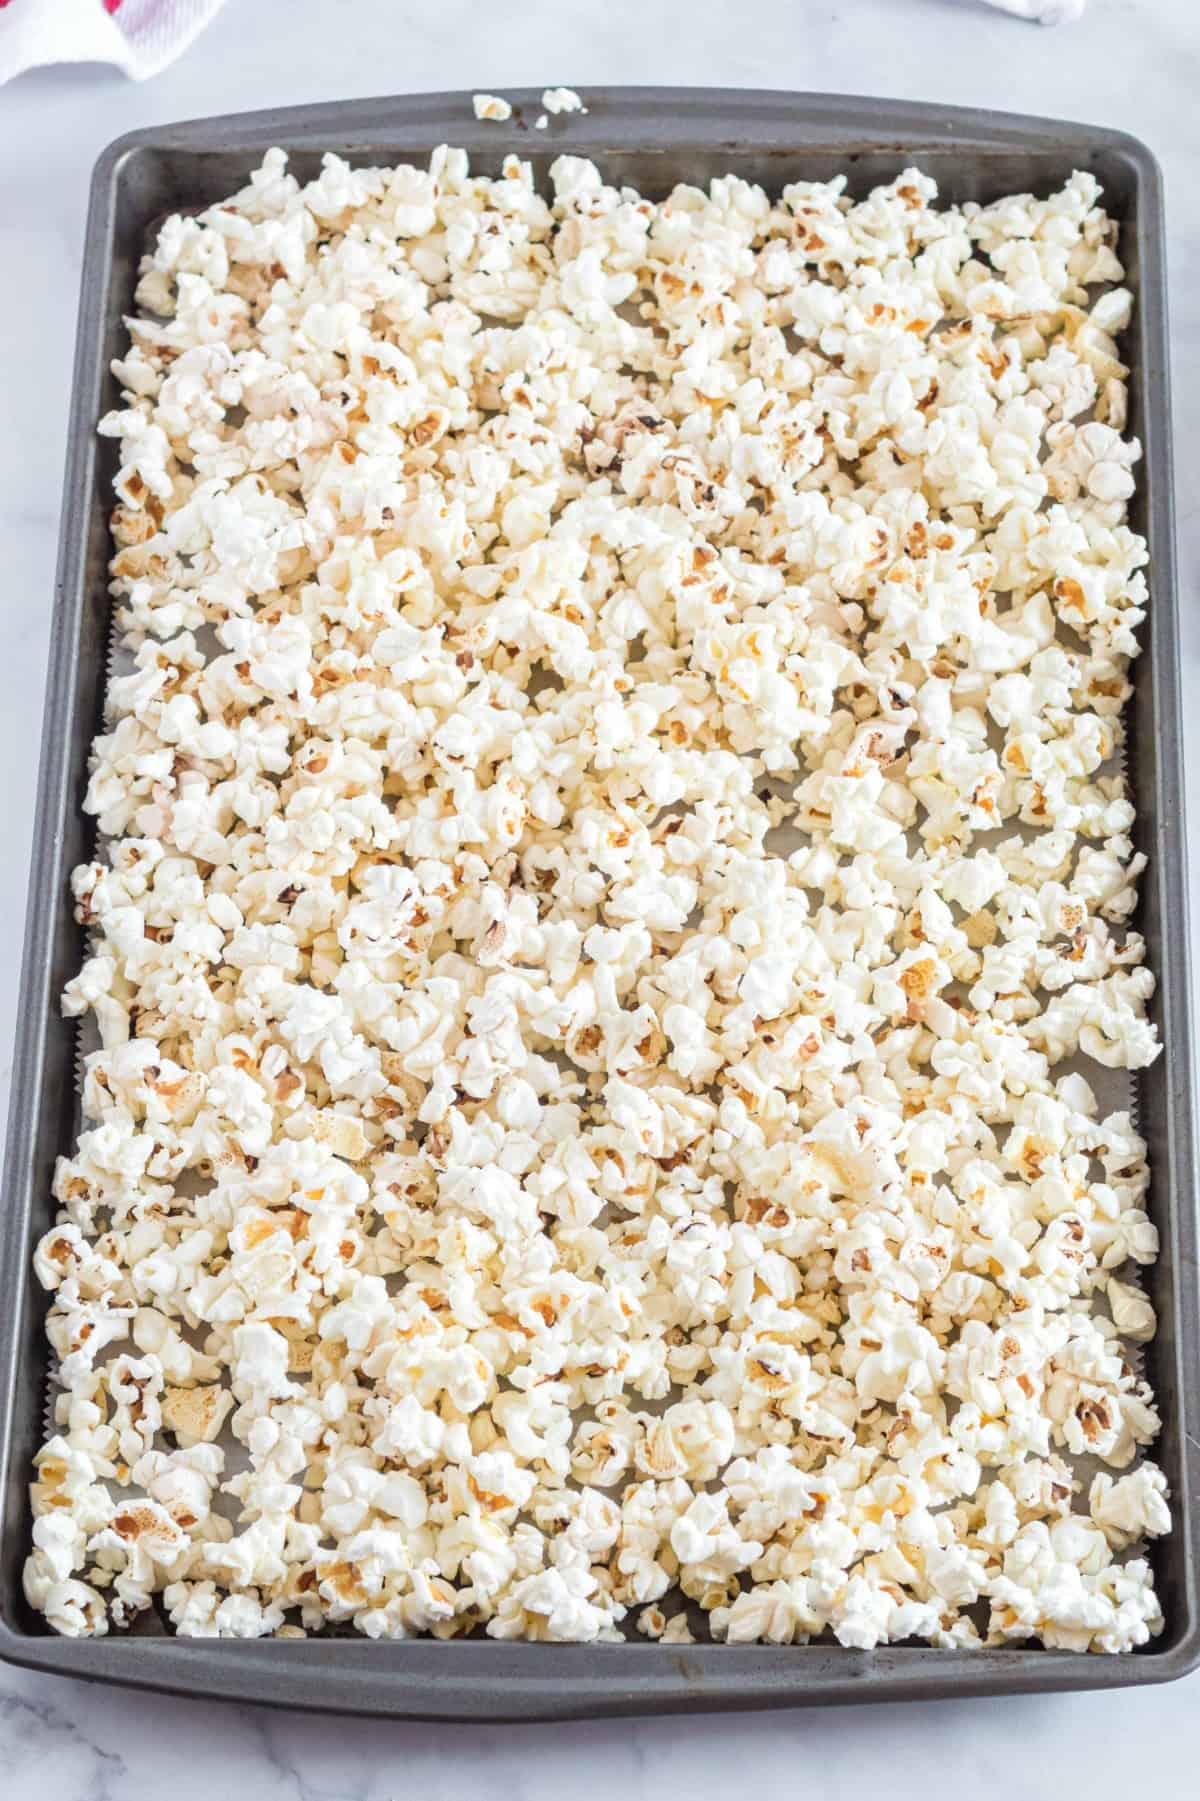 popcorn on a cookie sheet